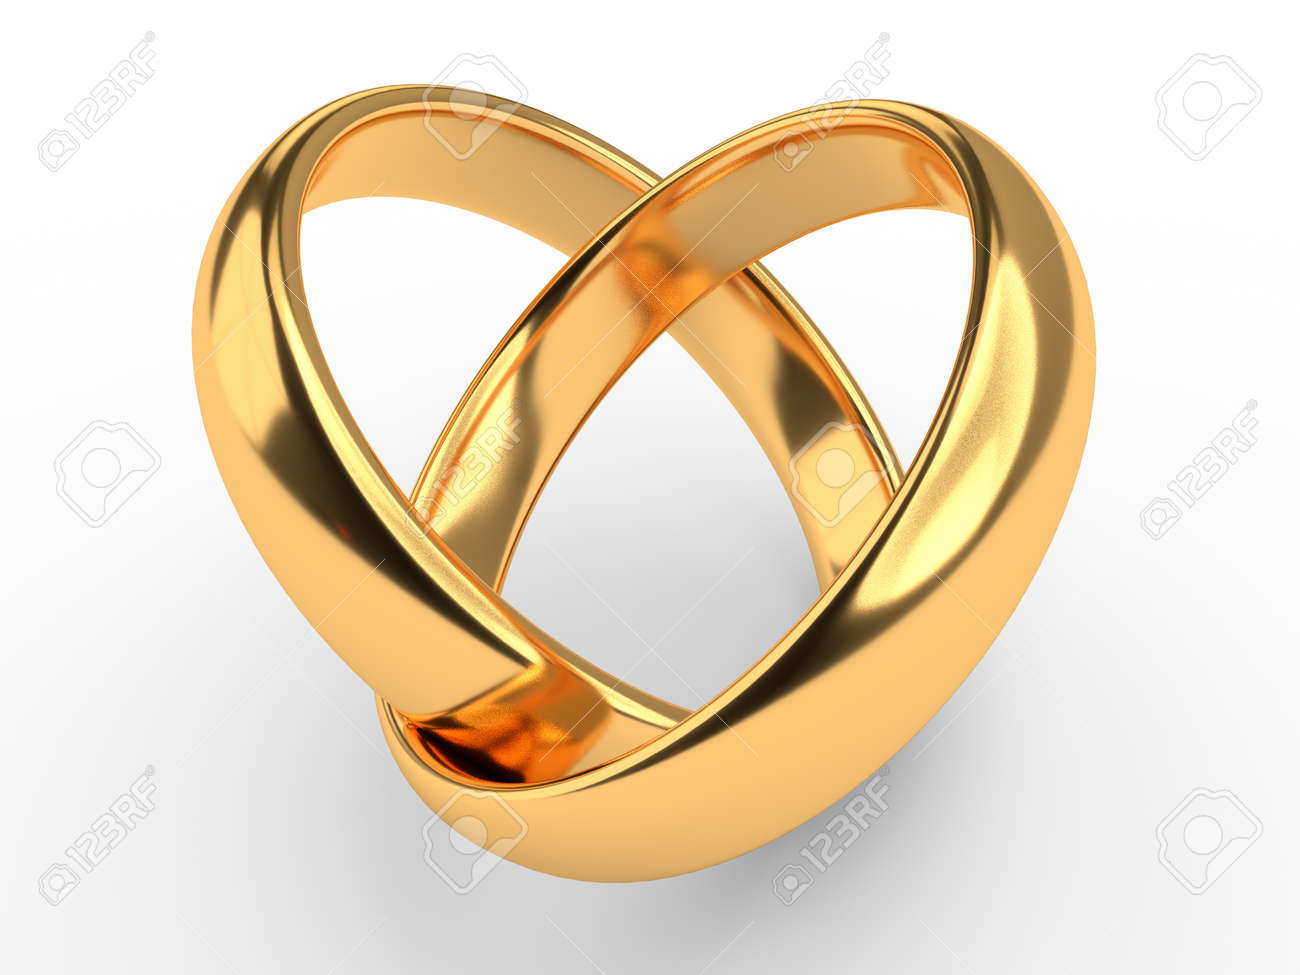 Heart With Two Connected Gold Wedding Rings Stock Photo Picture And